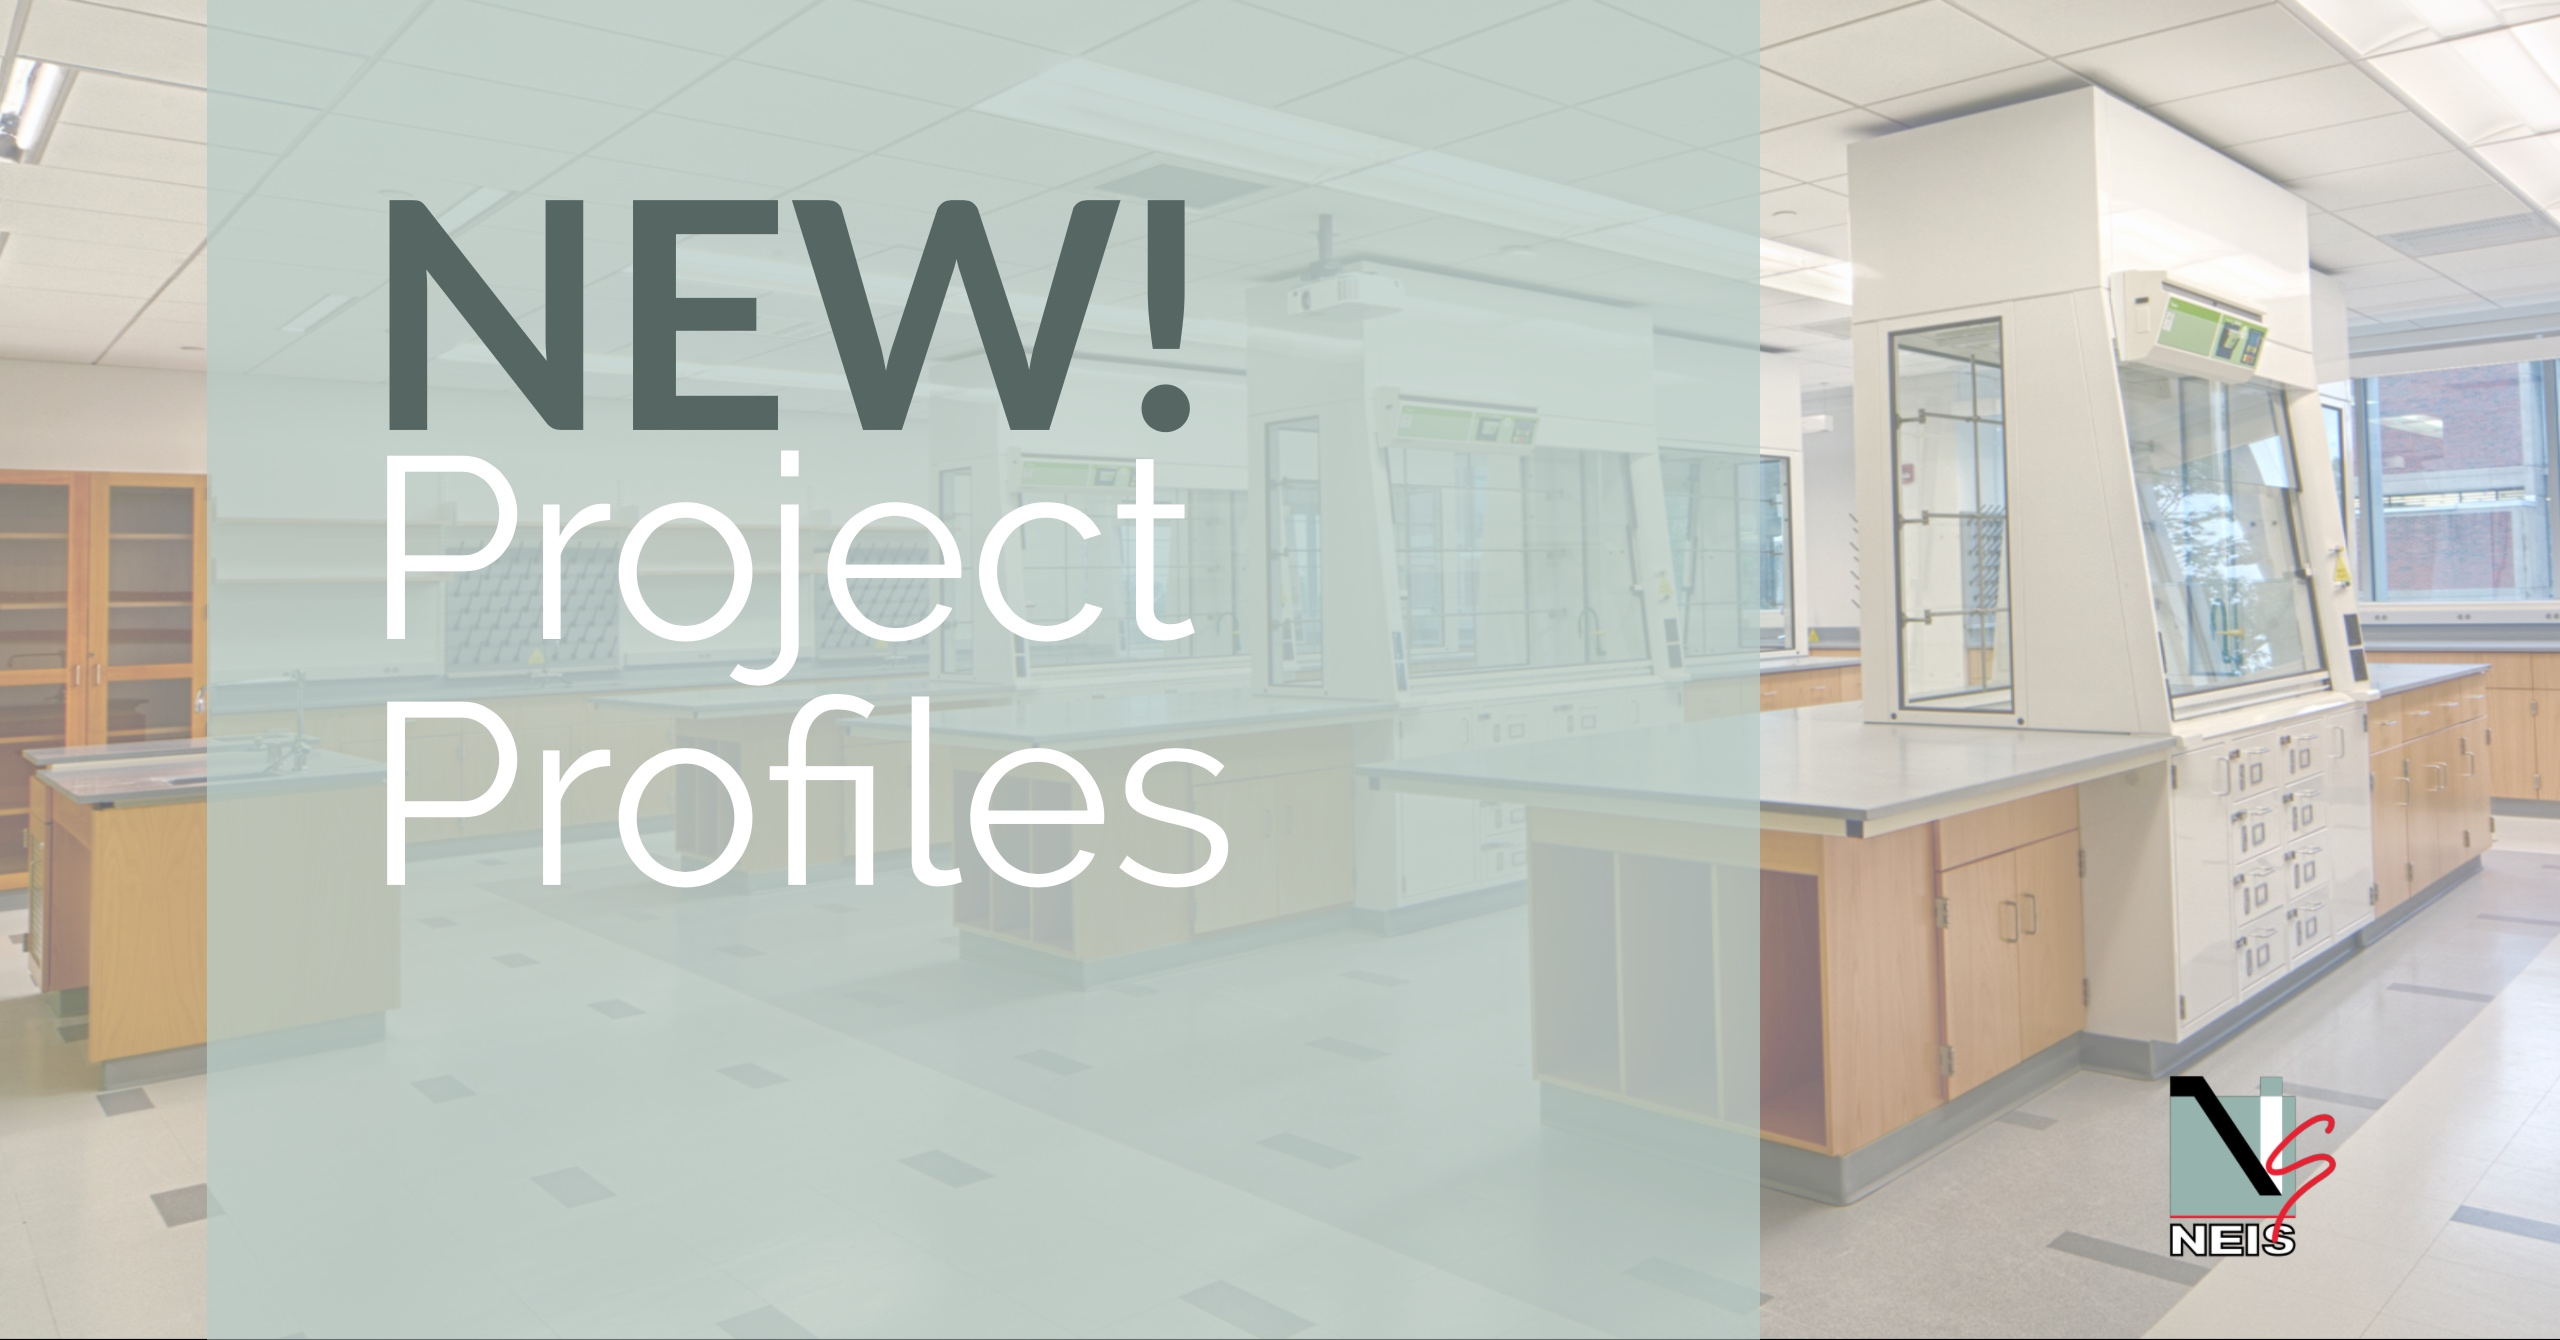 NEIS: NEW Project Profiles!